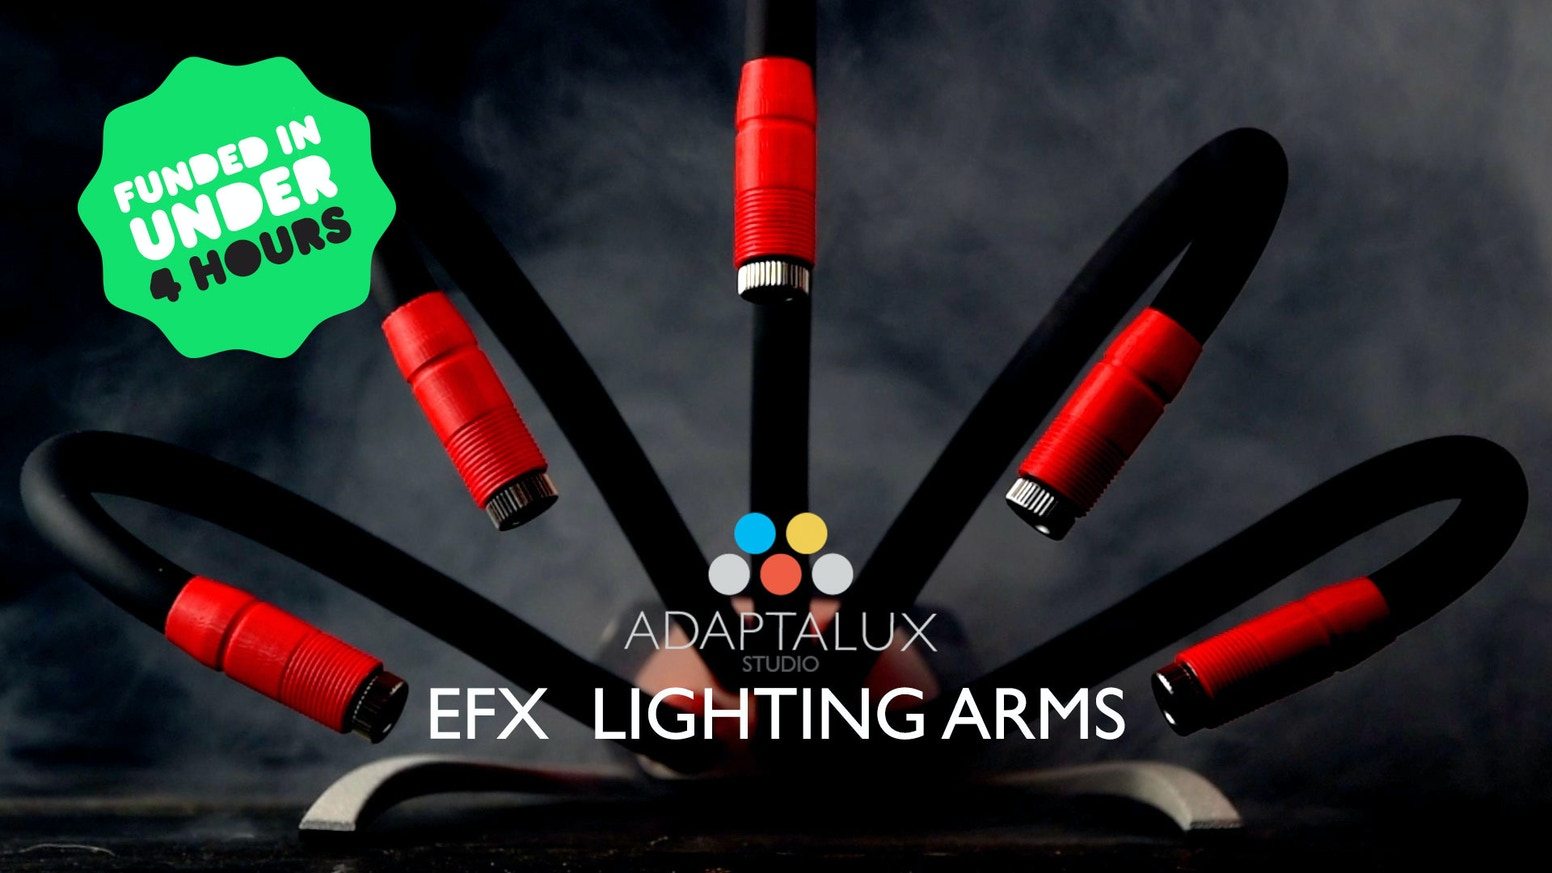 Take your creativity to the next level with special effect lighting arms for the Adaptalux Studio.